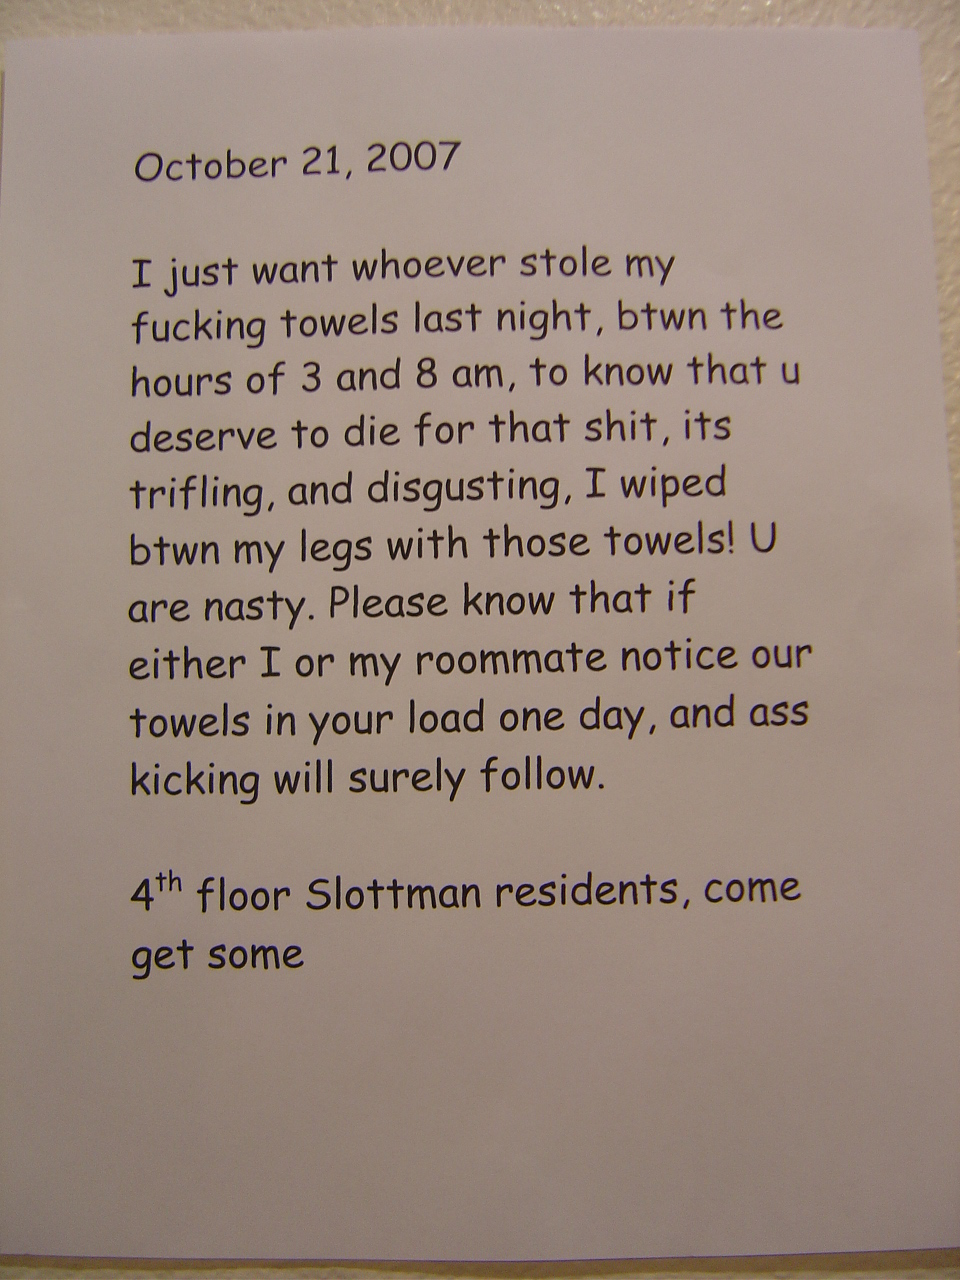 I just want whoever stole my fucking towels last night, btwn the hours of 3 and 8 am, to know that u deserve to die for that shit, its [sic] trifling, and disgusting. I wiped btwn my legs with those towels! U are nasty. Please kn